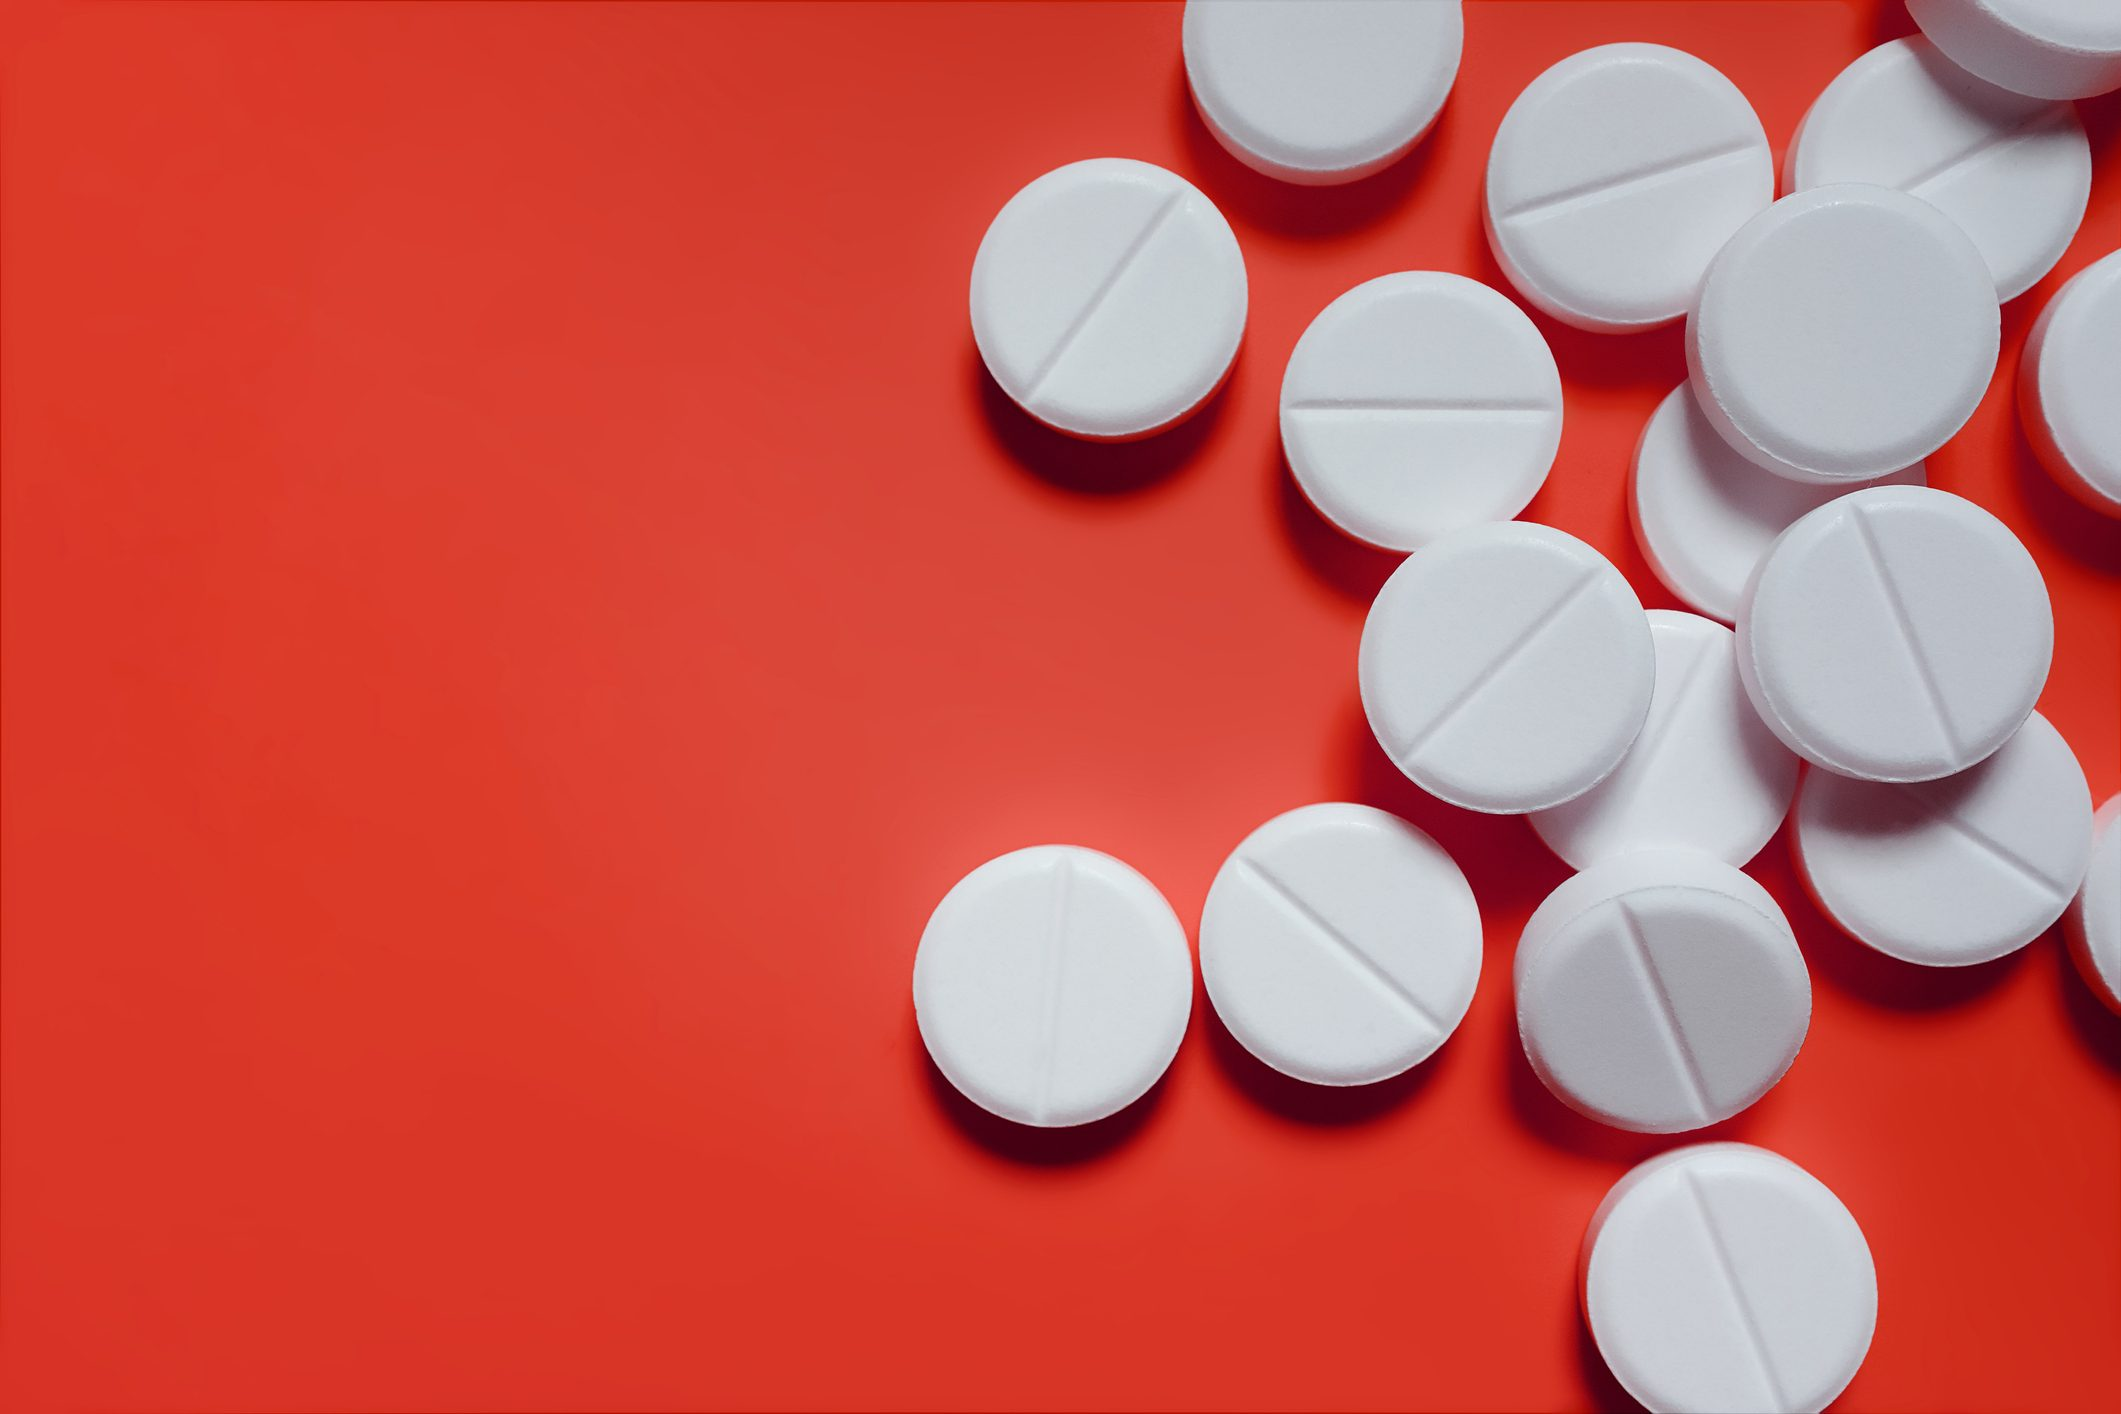 white pills on red background